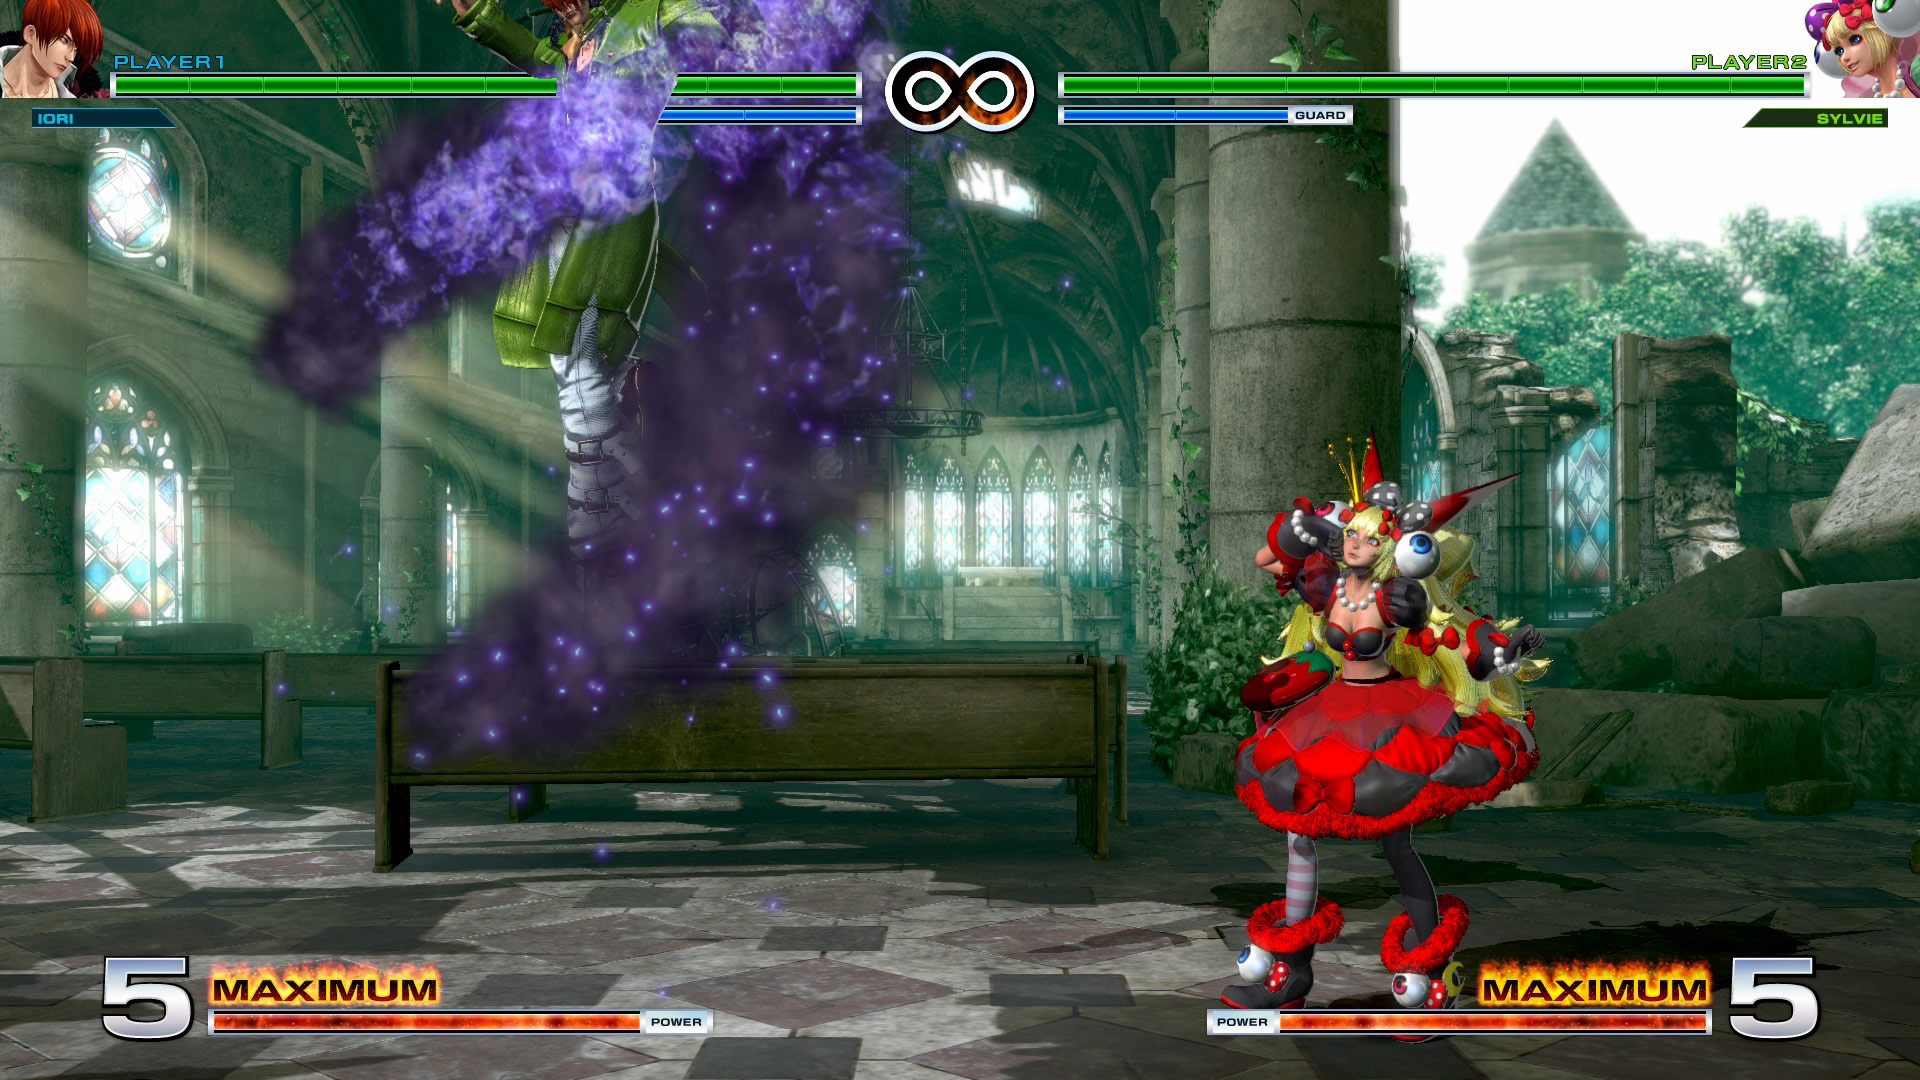 King of Fighters 14 1.10 graphics update 59 out of 60 image gallery